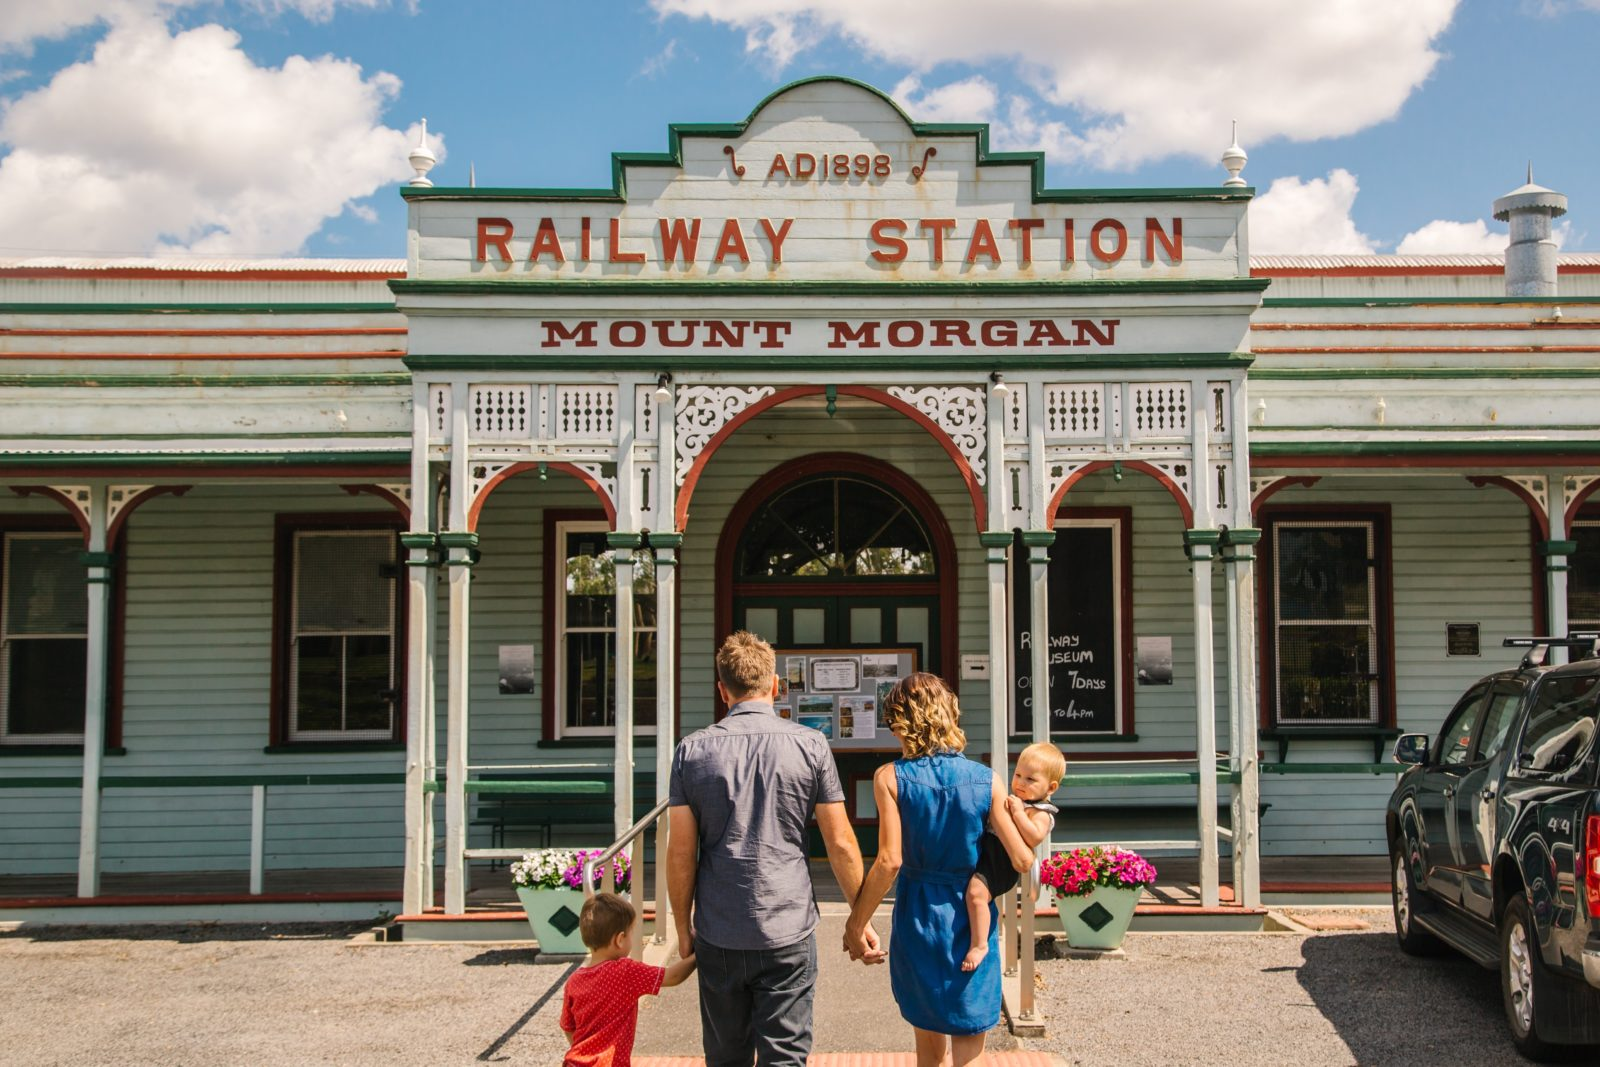 Mount Morgan Railway Museaum